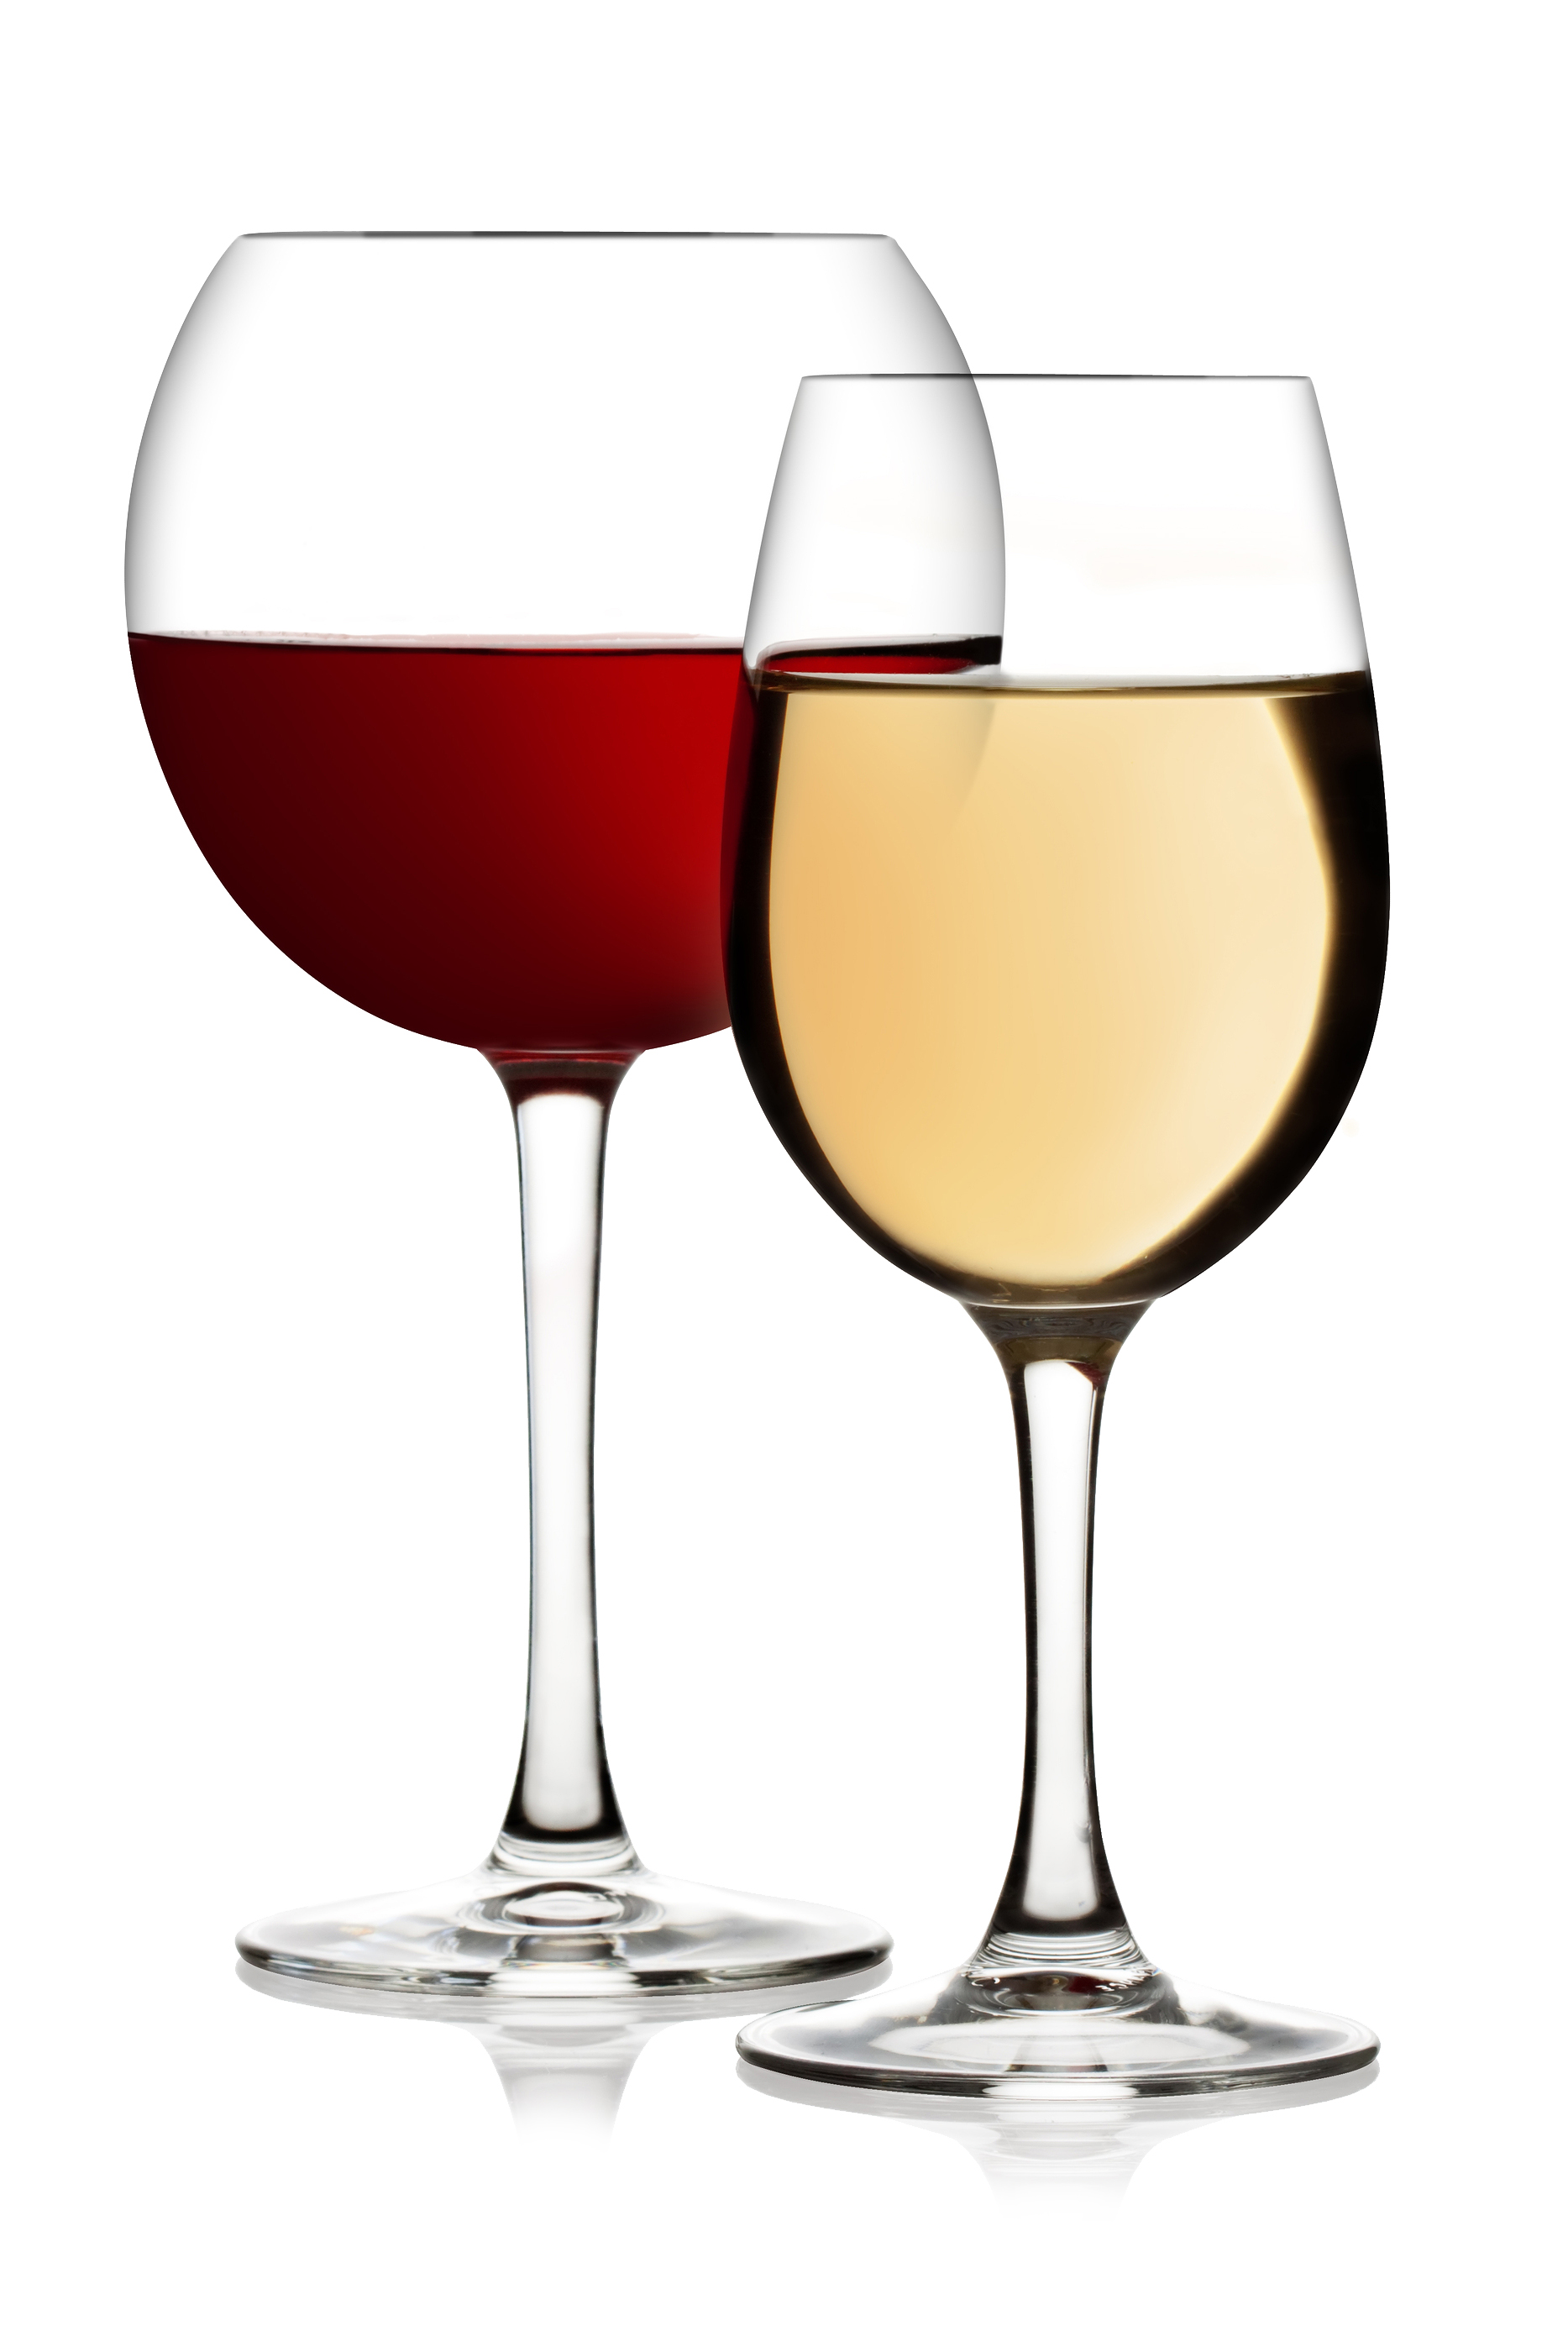 Amazing Wine Pictures & Backgrounds